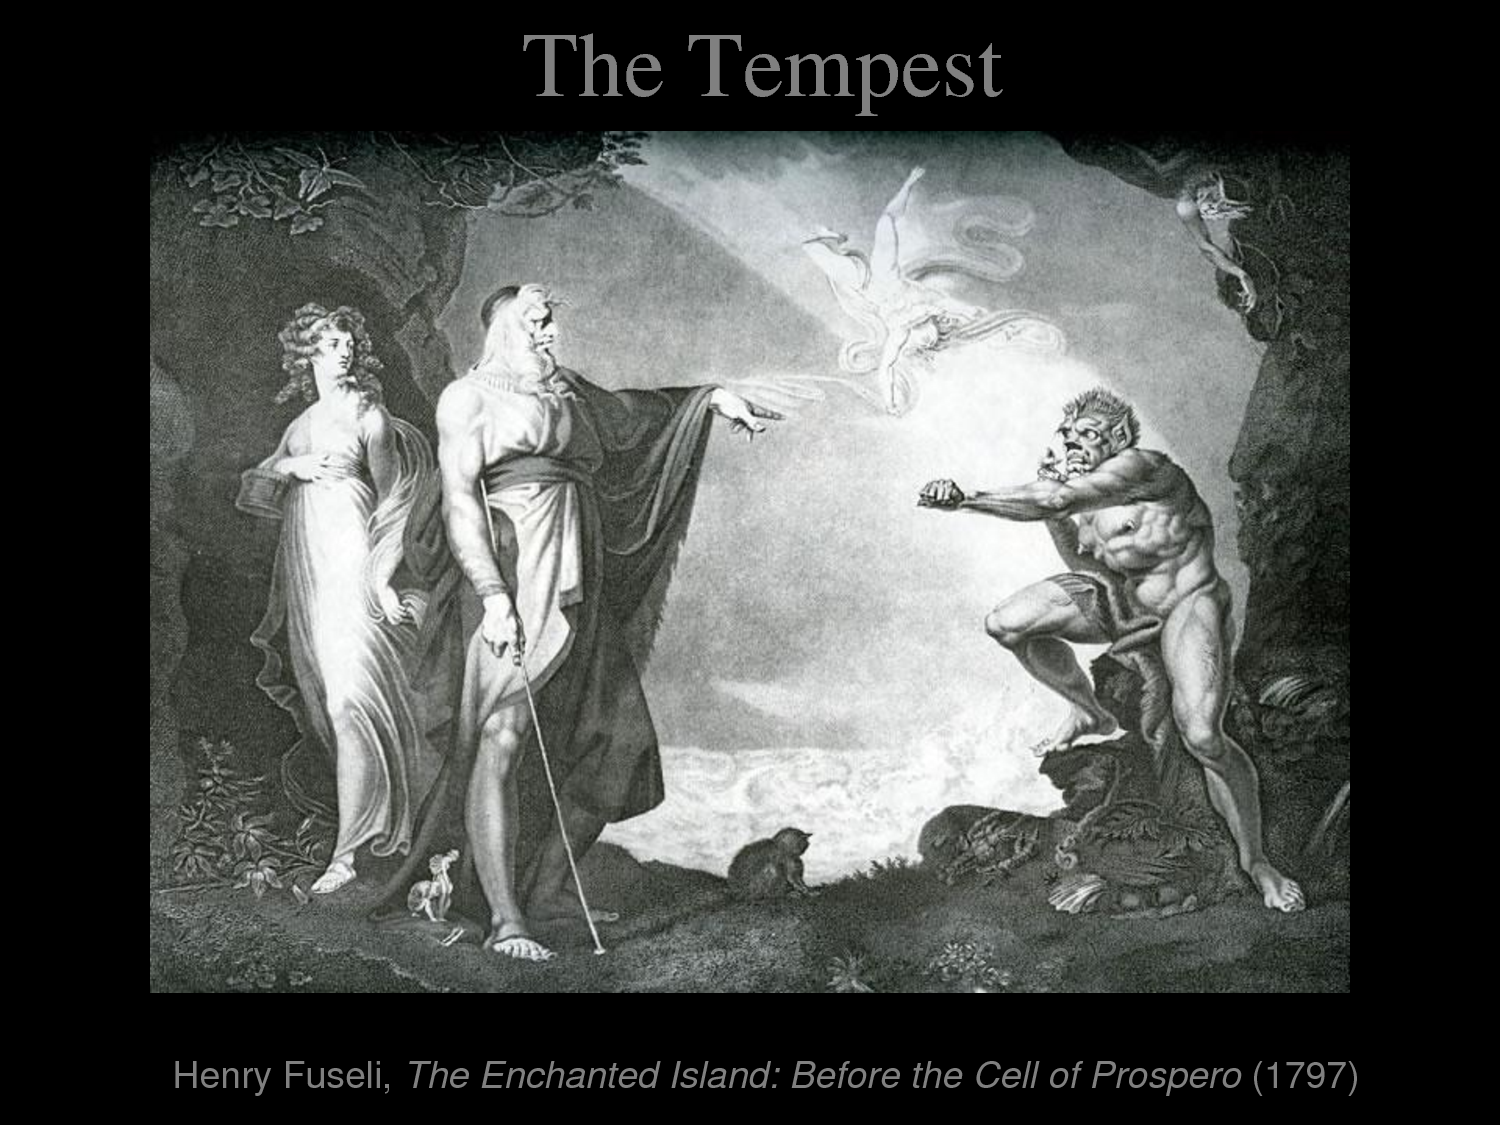 the tempest relationship between prospero All though the tempest is an unusually short play by elizabethan standards, yet it continually gives the impression of being much bigger than it actually is in this essay i will show how the relationship does in fact change between prospero and ariel during the play, and how it grows to a love of sort.